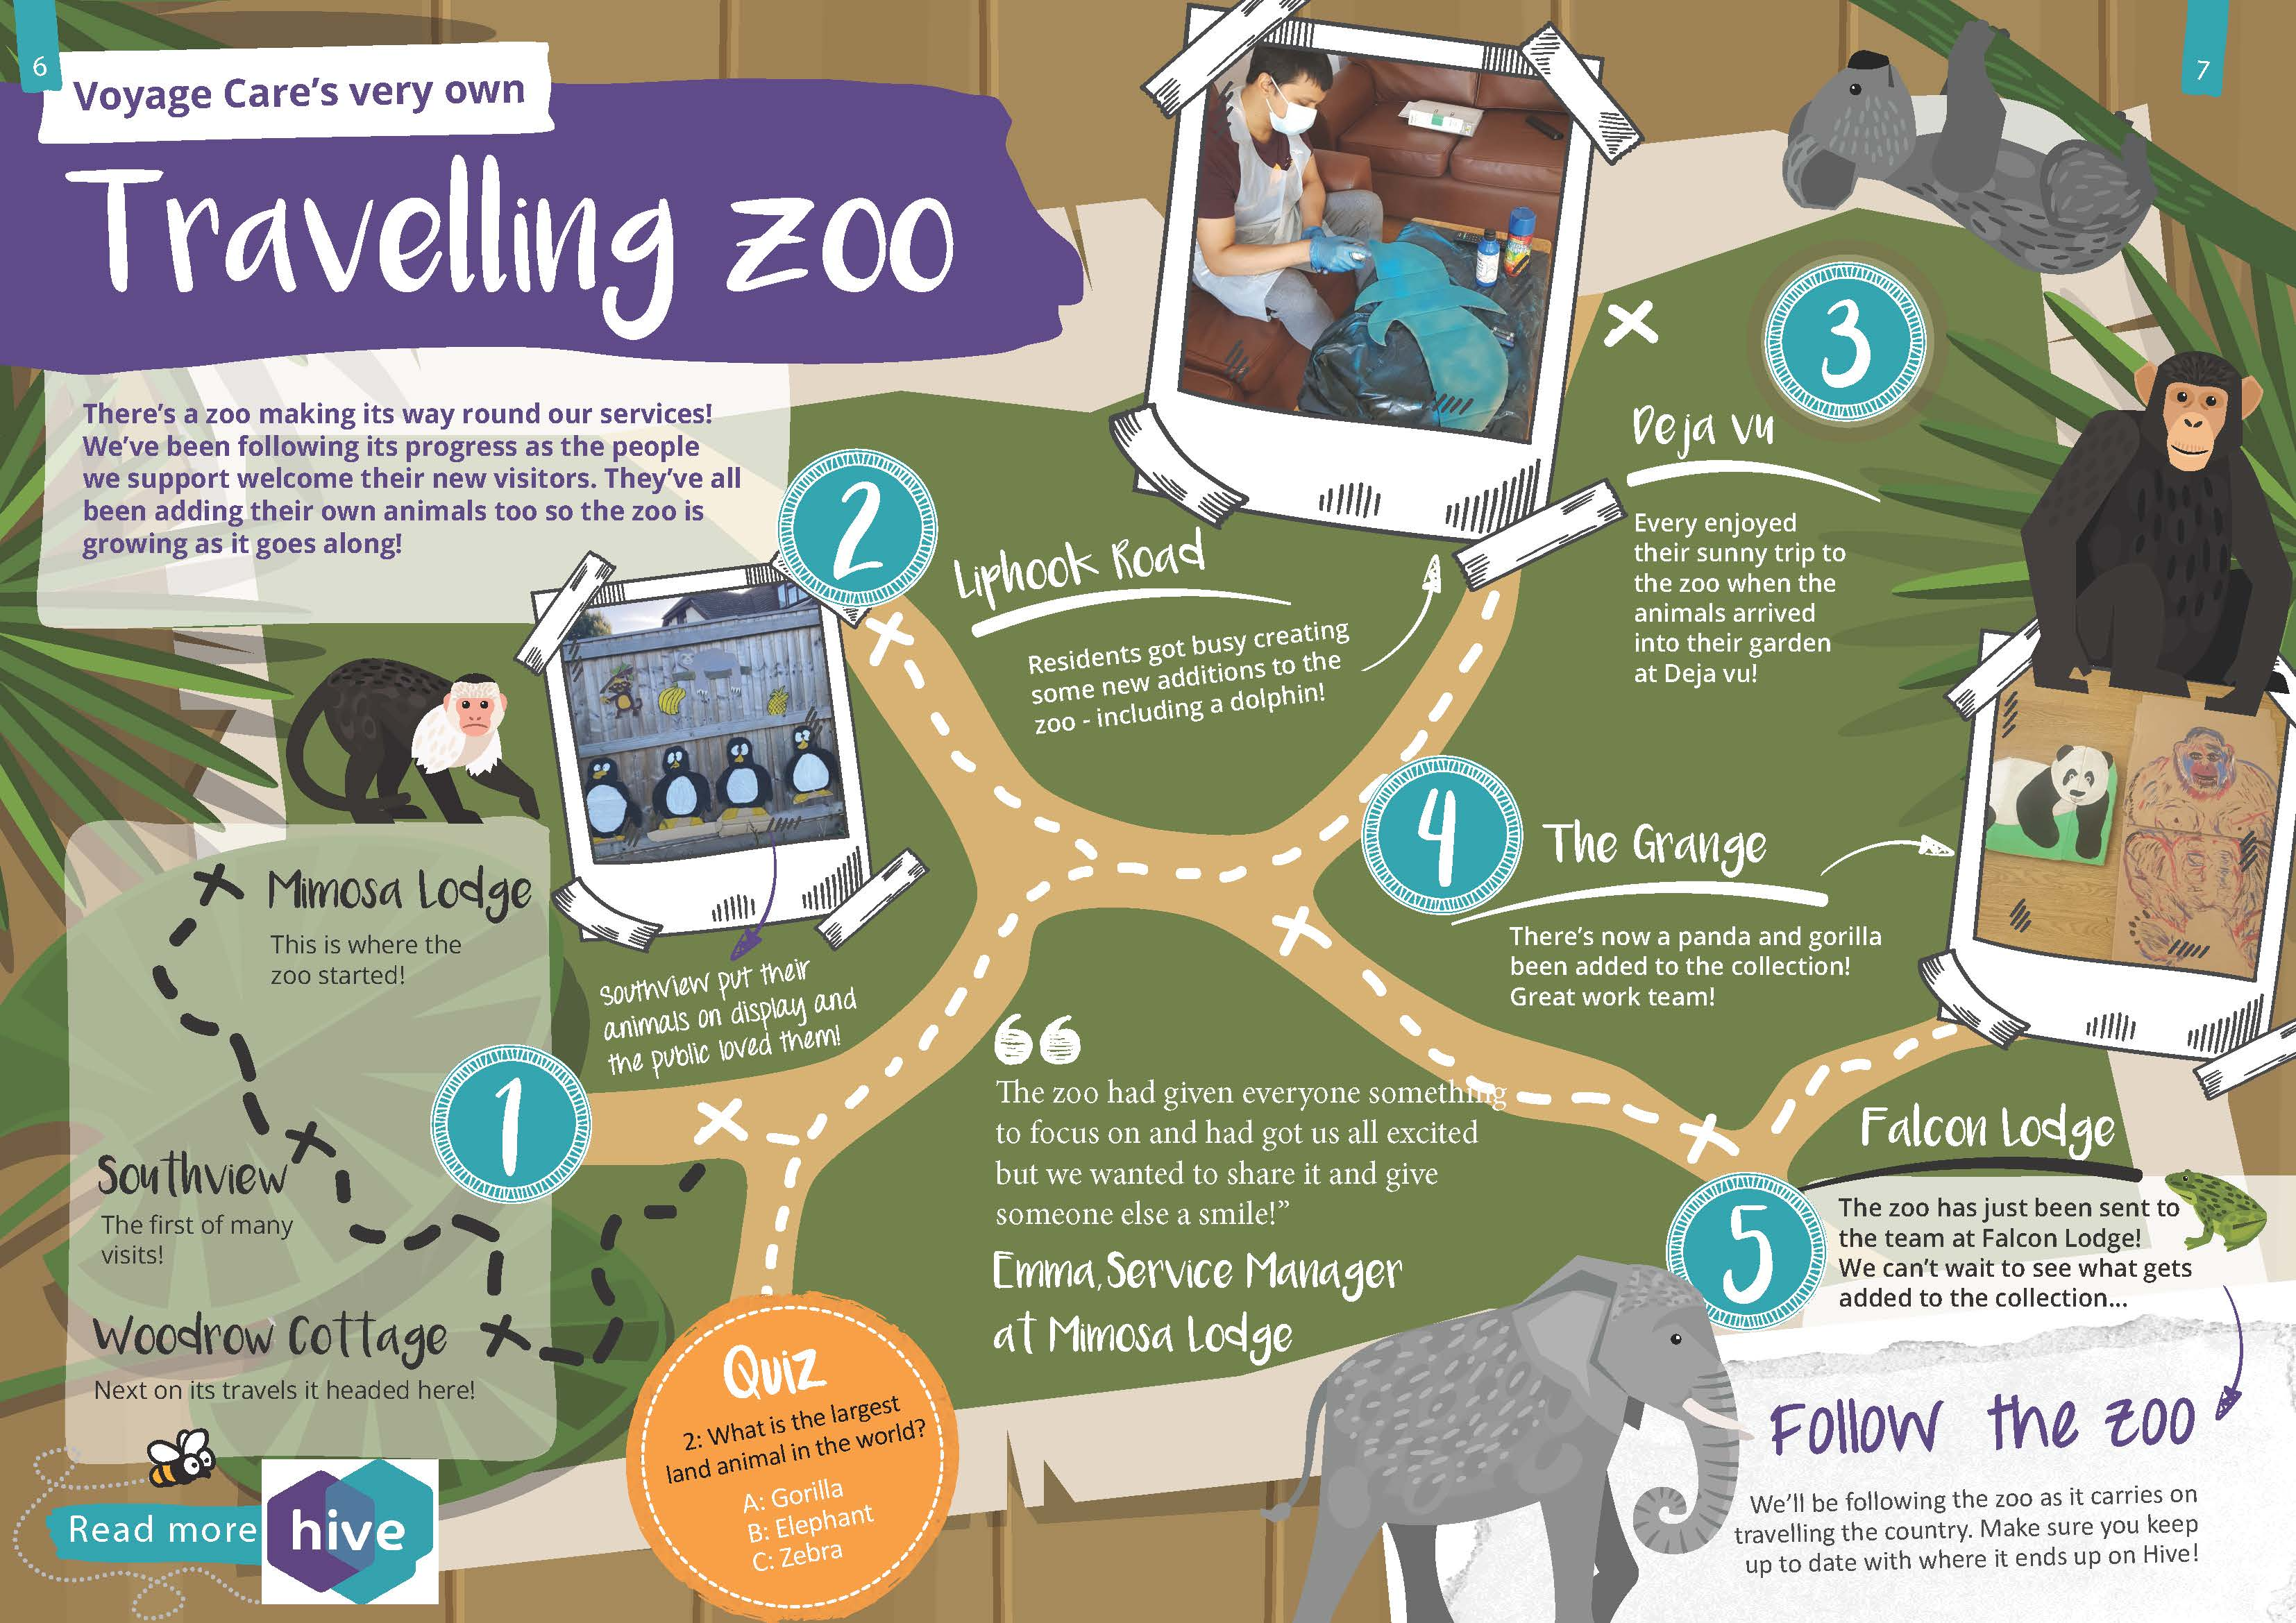 Voyage Care's very own traveling zoo